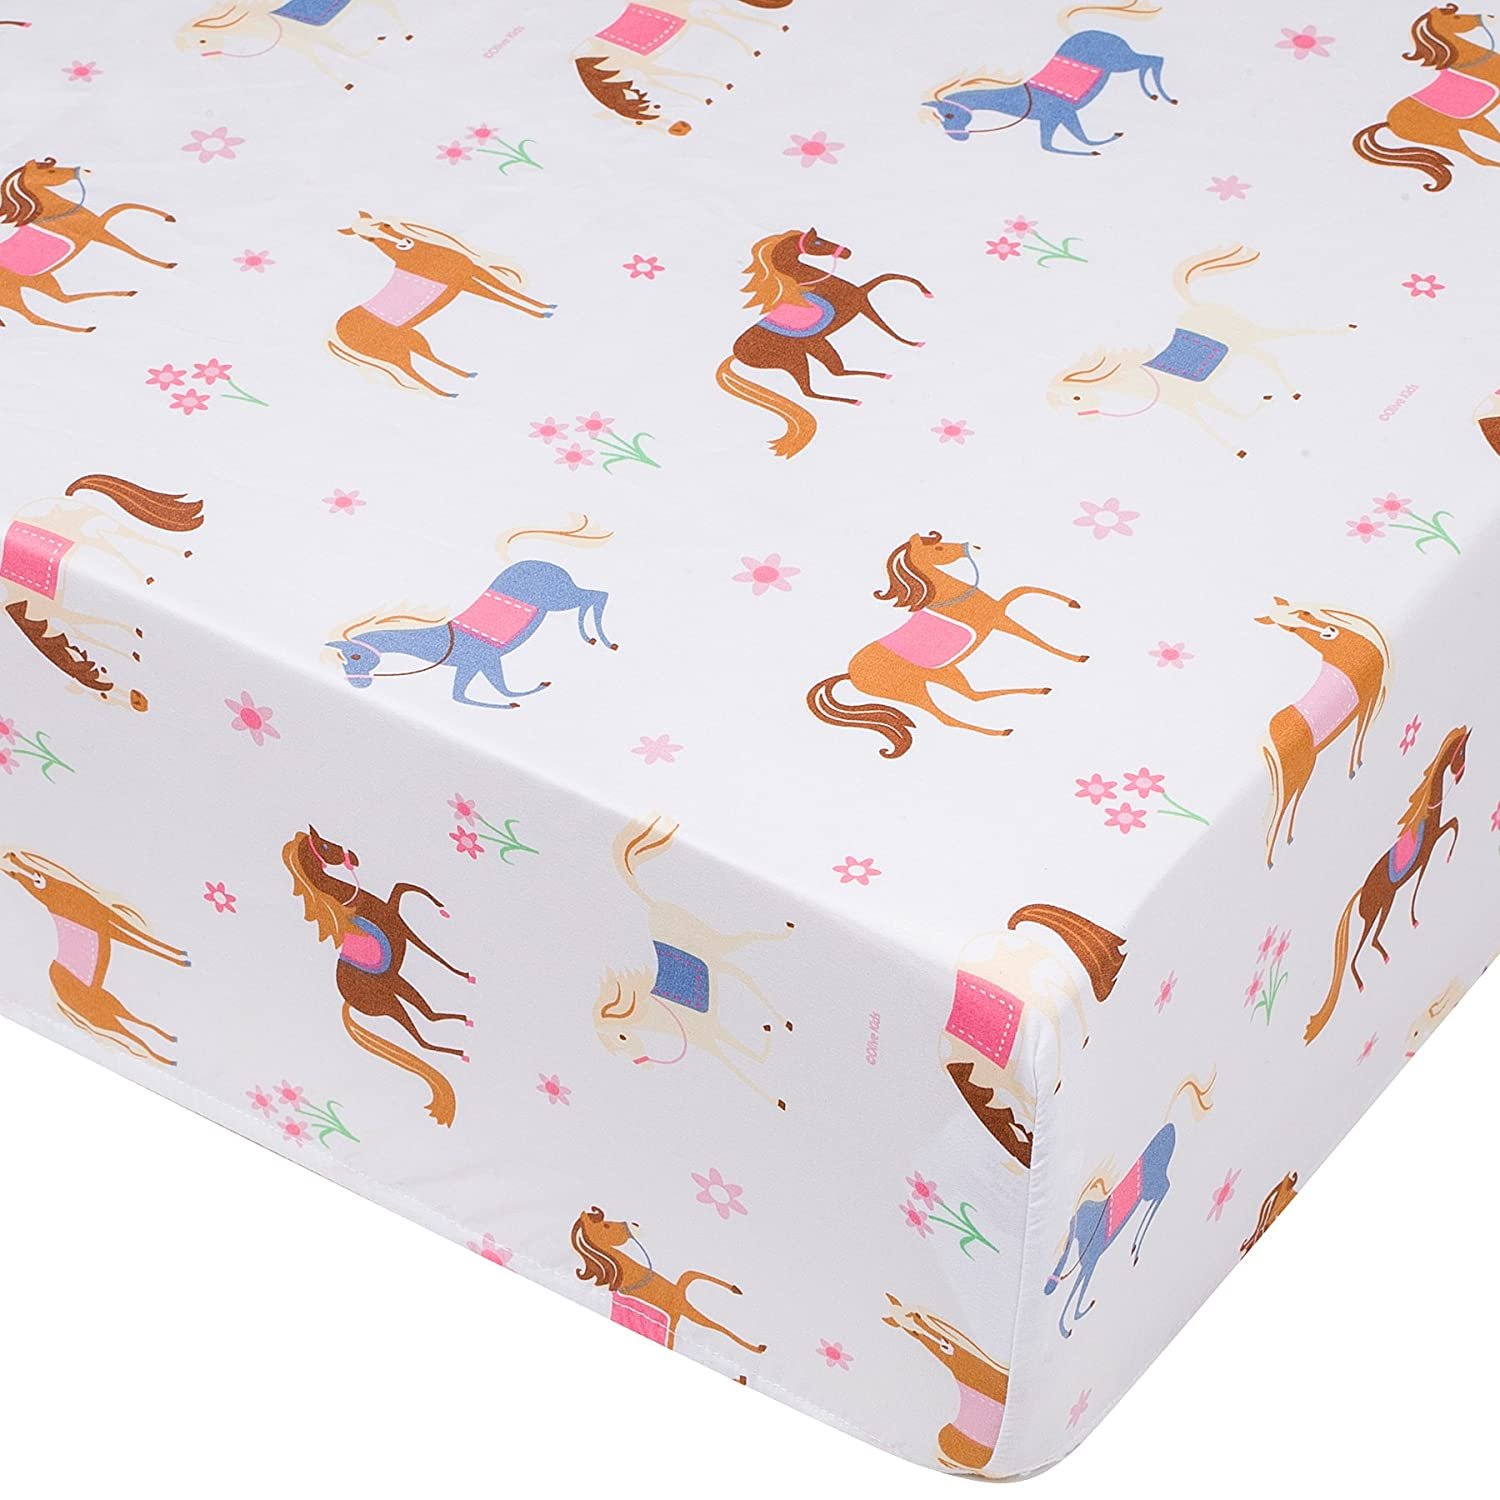 Wildkin Fitted Crib Sheet for Infant and Toddler Boys and Girls, Soft, Breathable Microfiber Fabric, Includes One Fitted Crib Sheet Measuring 52 x 28 Inches, Designed to Fit a Standard Crib Mattress